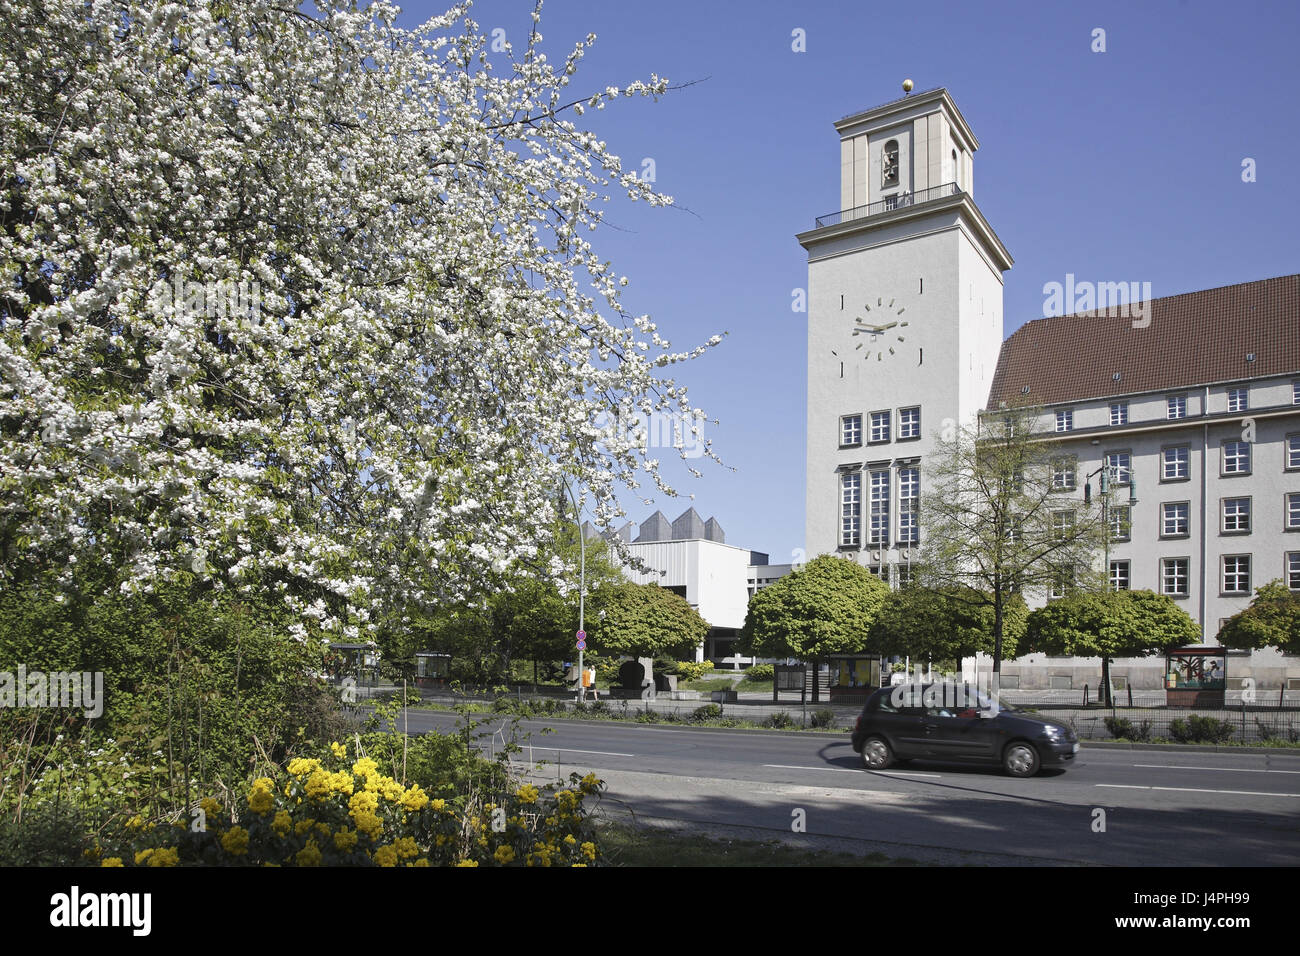 Germany, Berlin, Tempelhofer embankment, city hall, - Stock Image